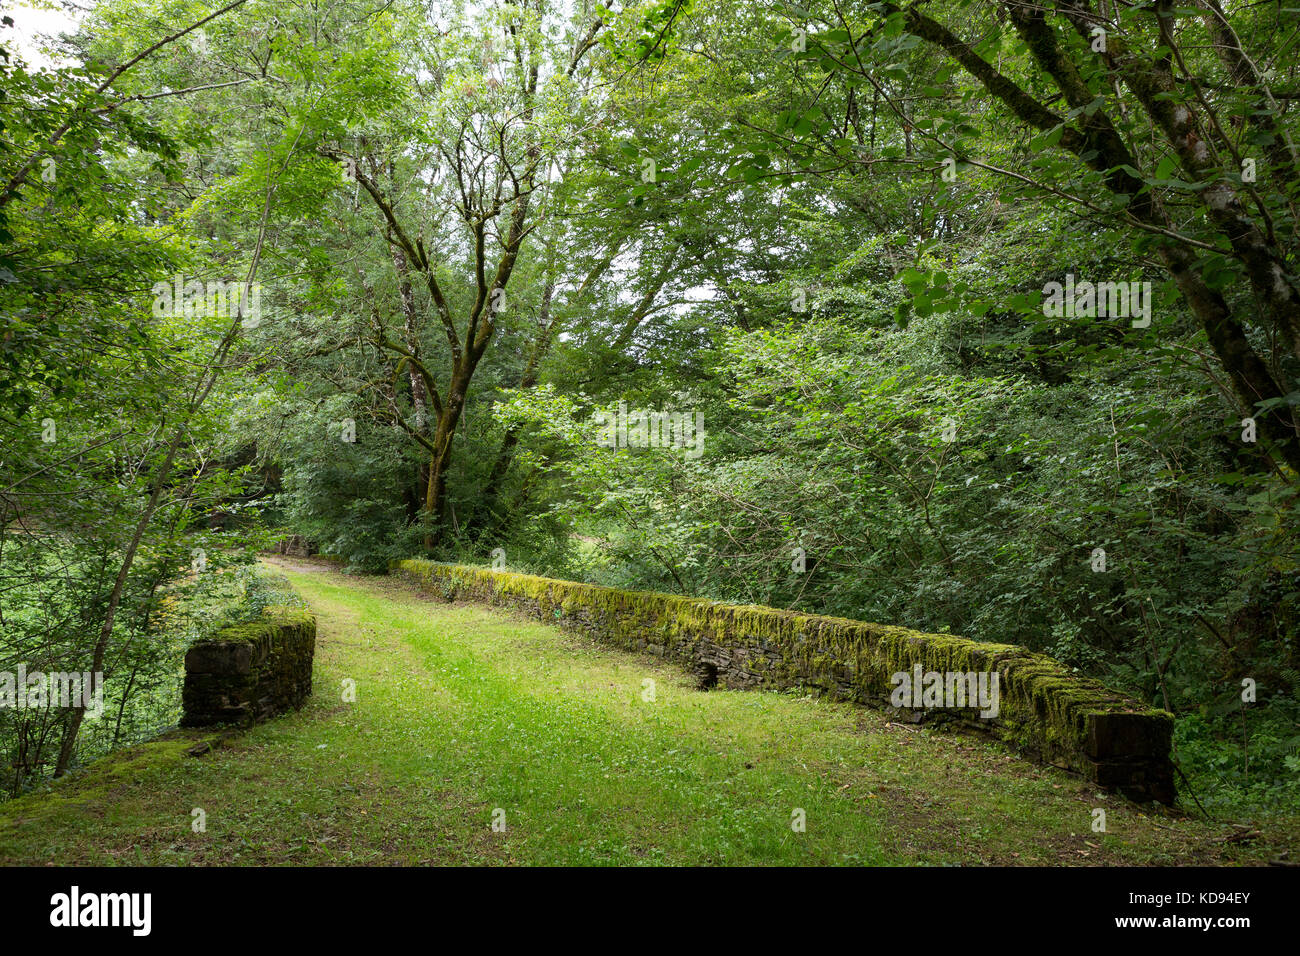 JUMILHAC-LE-GRAND, FRANCE - JULY 1, 2017: Old 2000 year old roman bridge in a green forest. - Stock Image